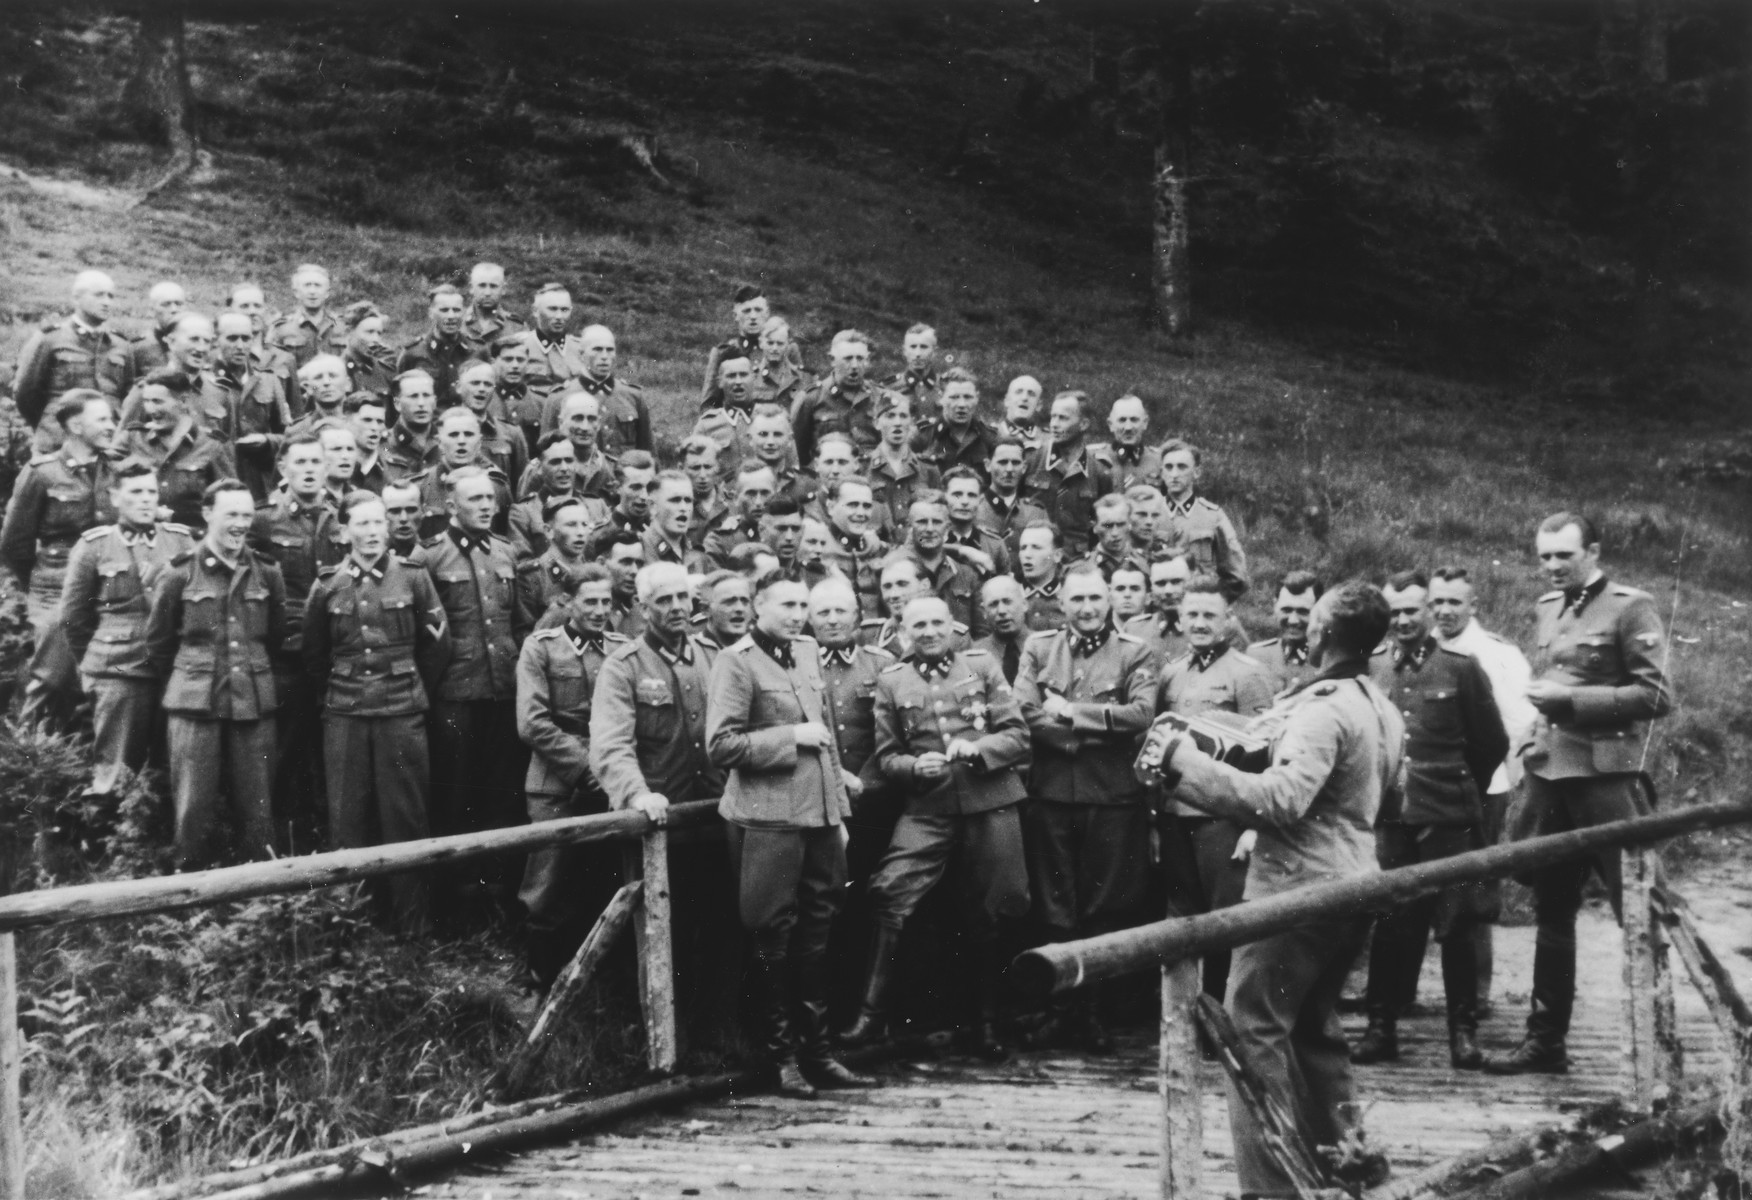 An accordionist leads a sing-along for SS officers at their retreat at Solahuette outside Auschwitz.  Pictured in the front row are Karl Hoecker, Otto Moll, Rudolf Hoess, Richard Baer, Josef Kramer (standing slightly behind Hoessler and partially obscured), Franz Hoessler, Josef Mengele, Anton Thumann, and Walter Schmidetzki.  Hermann Buch is in the center.  Konrad Wiegand, head of the Fahrbereitschaft (car and truck pool) is in the middle.  [Based on the officers visiting Solahutte, we surmise that the photographs were taken to honor Rudolf Hoess who completed his tenure as garrison senior on July 29.]